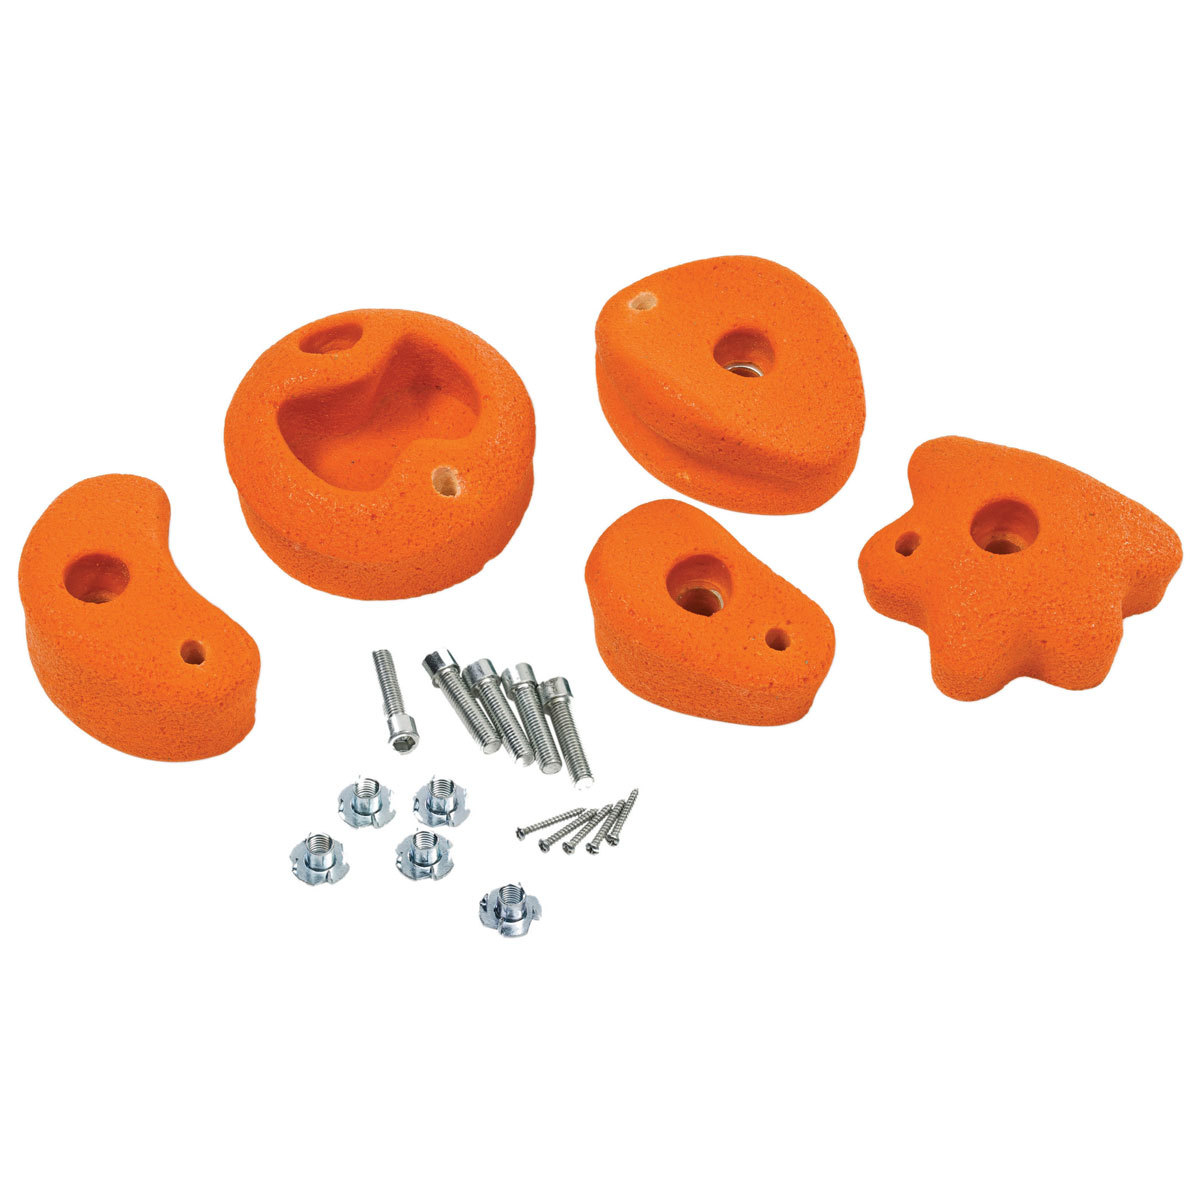 pierres à grimper - set de 5 pièces - medium - orange